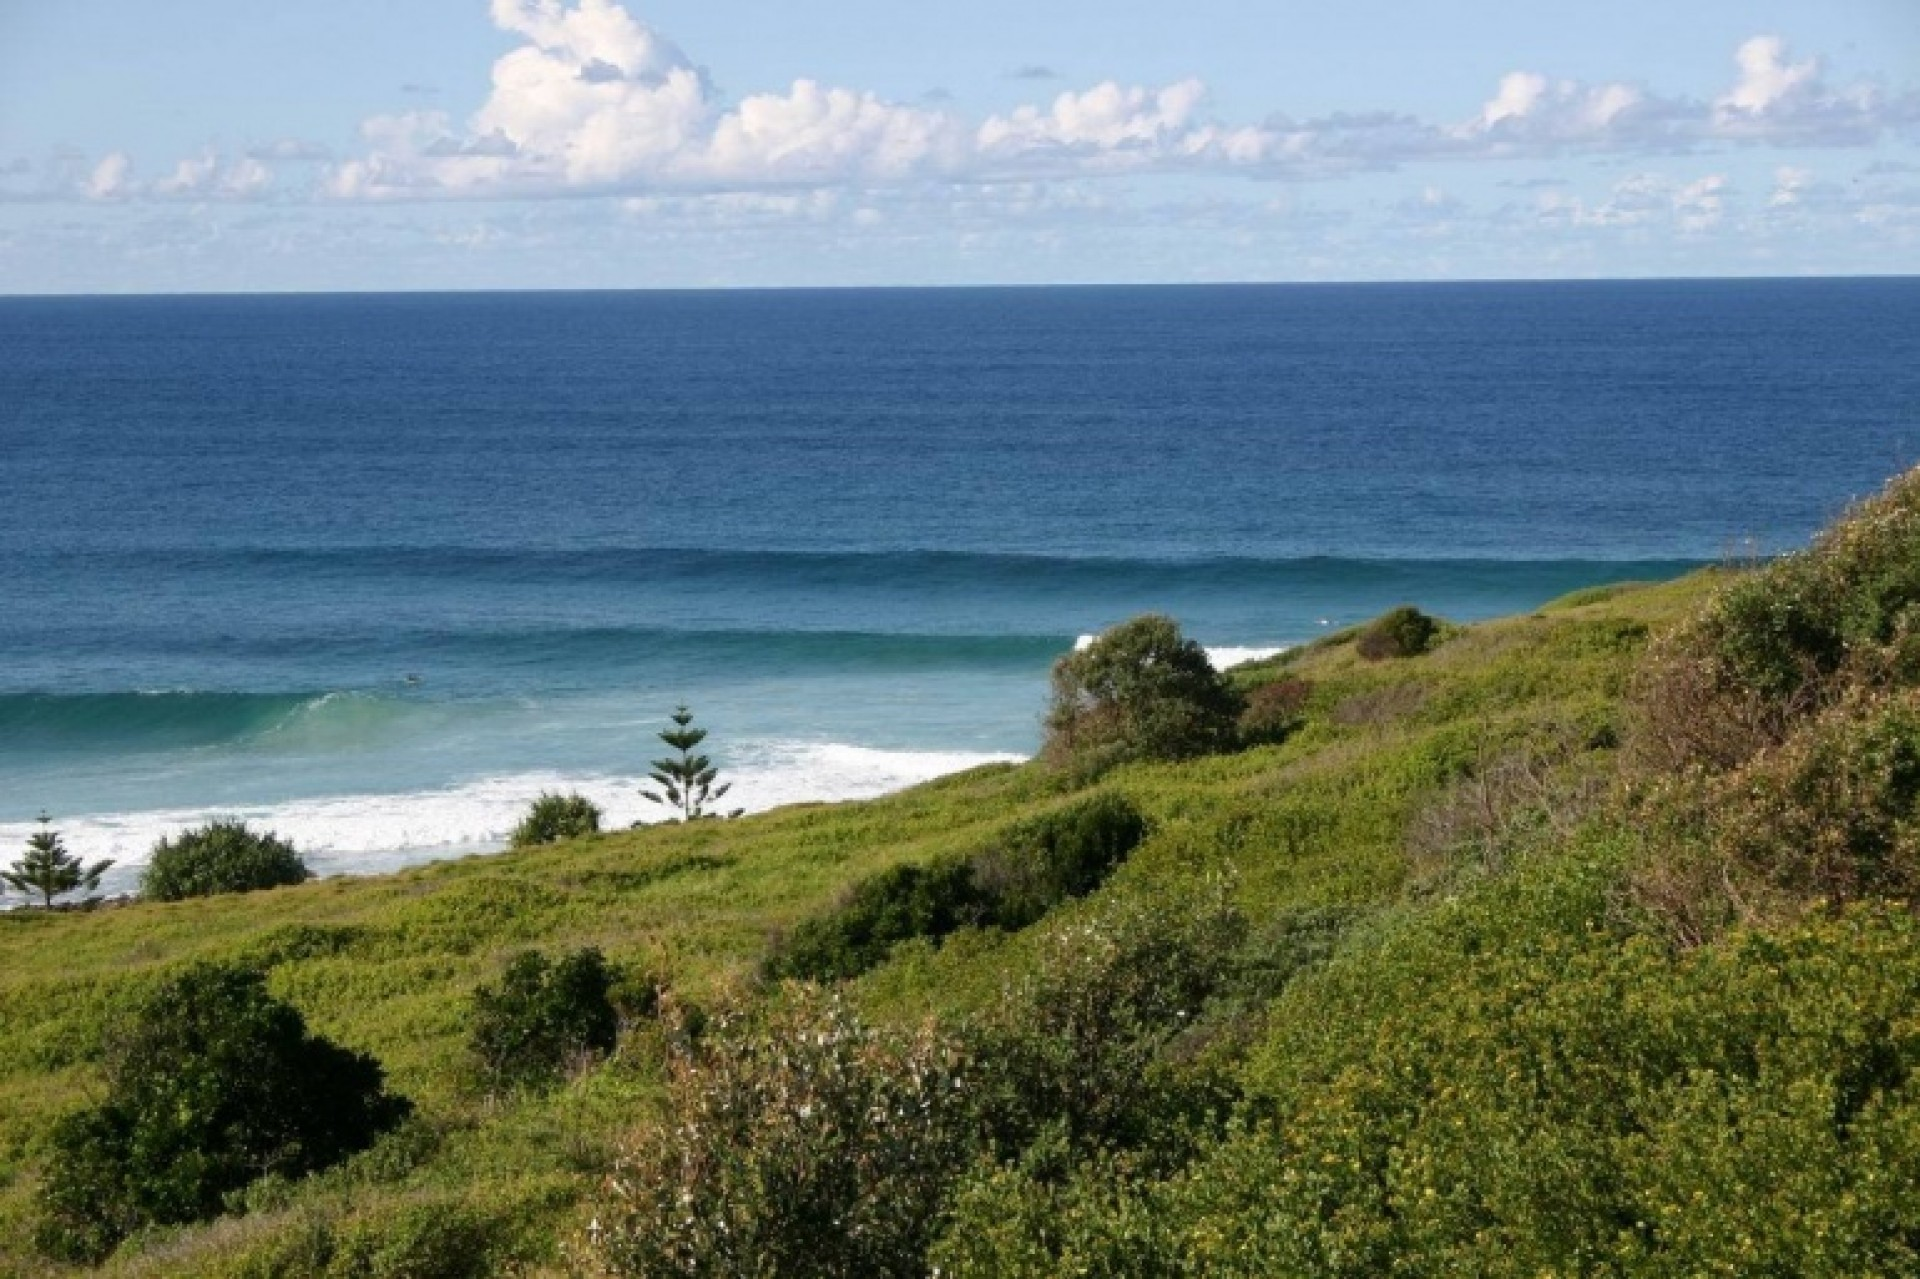 Krata's photo of Lennox Head